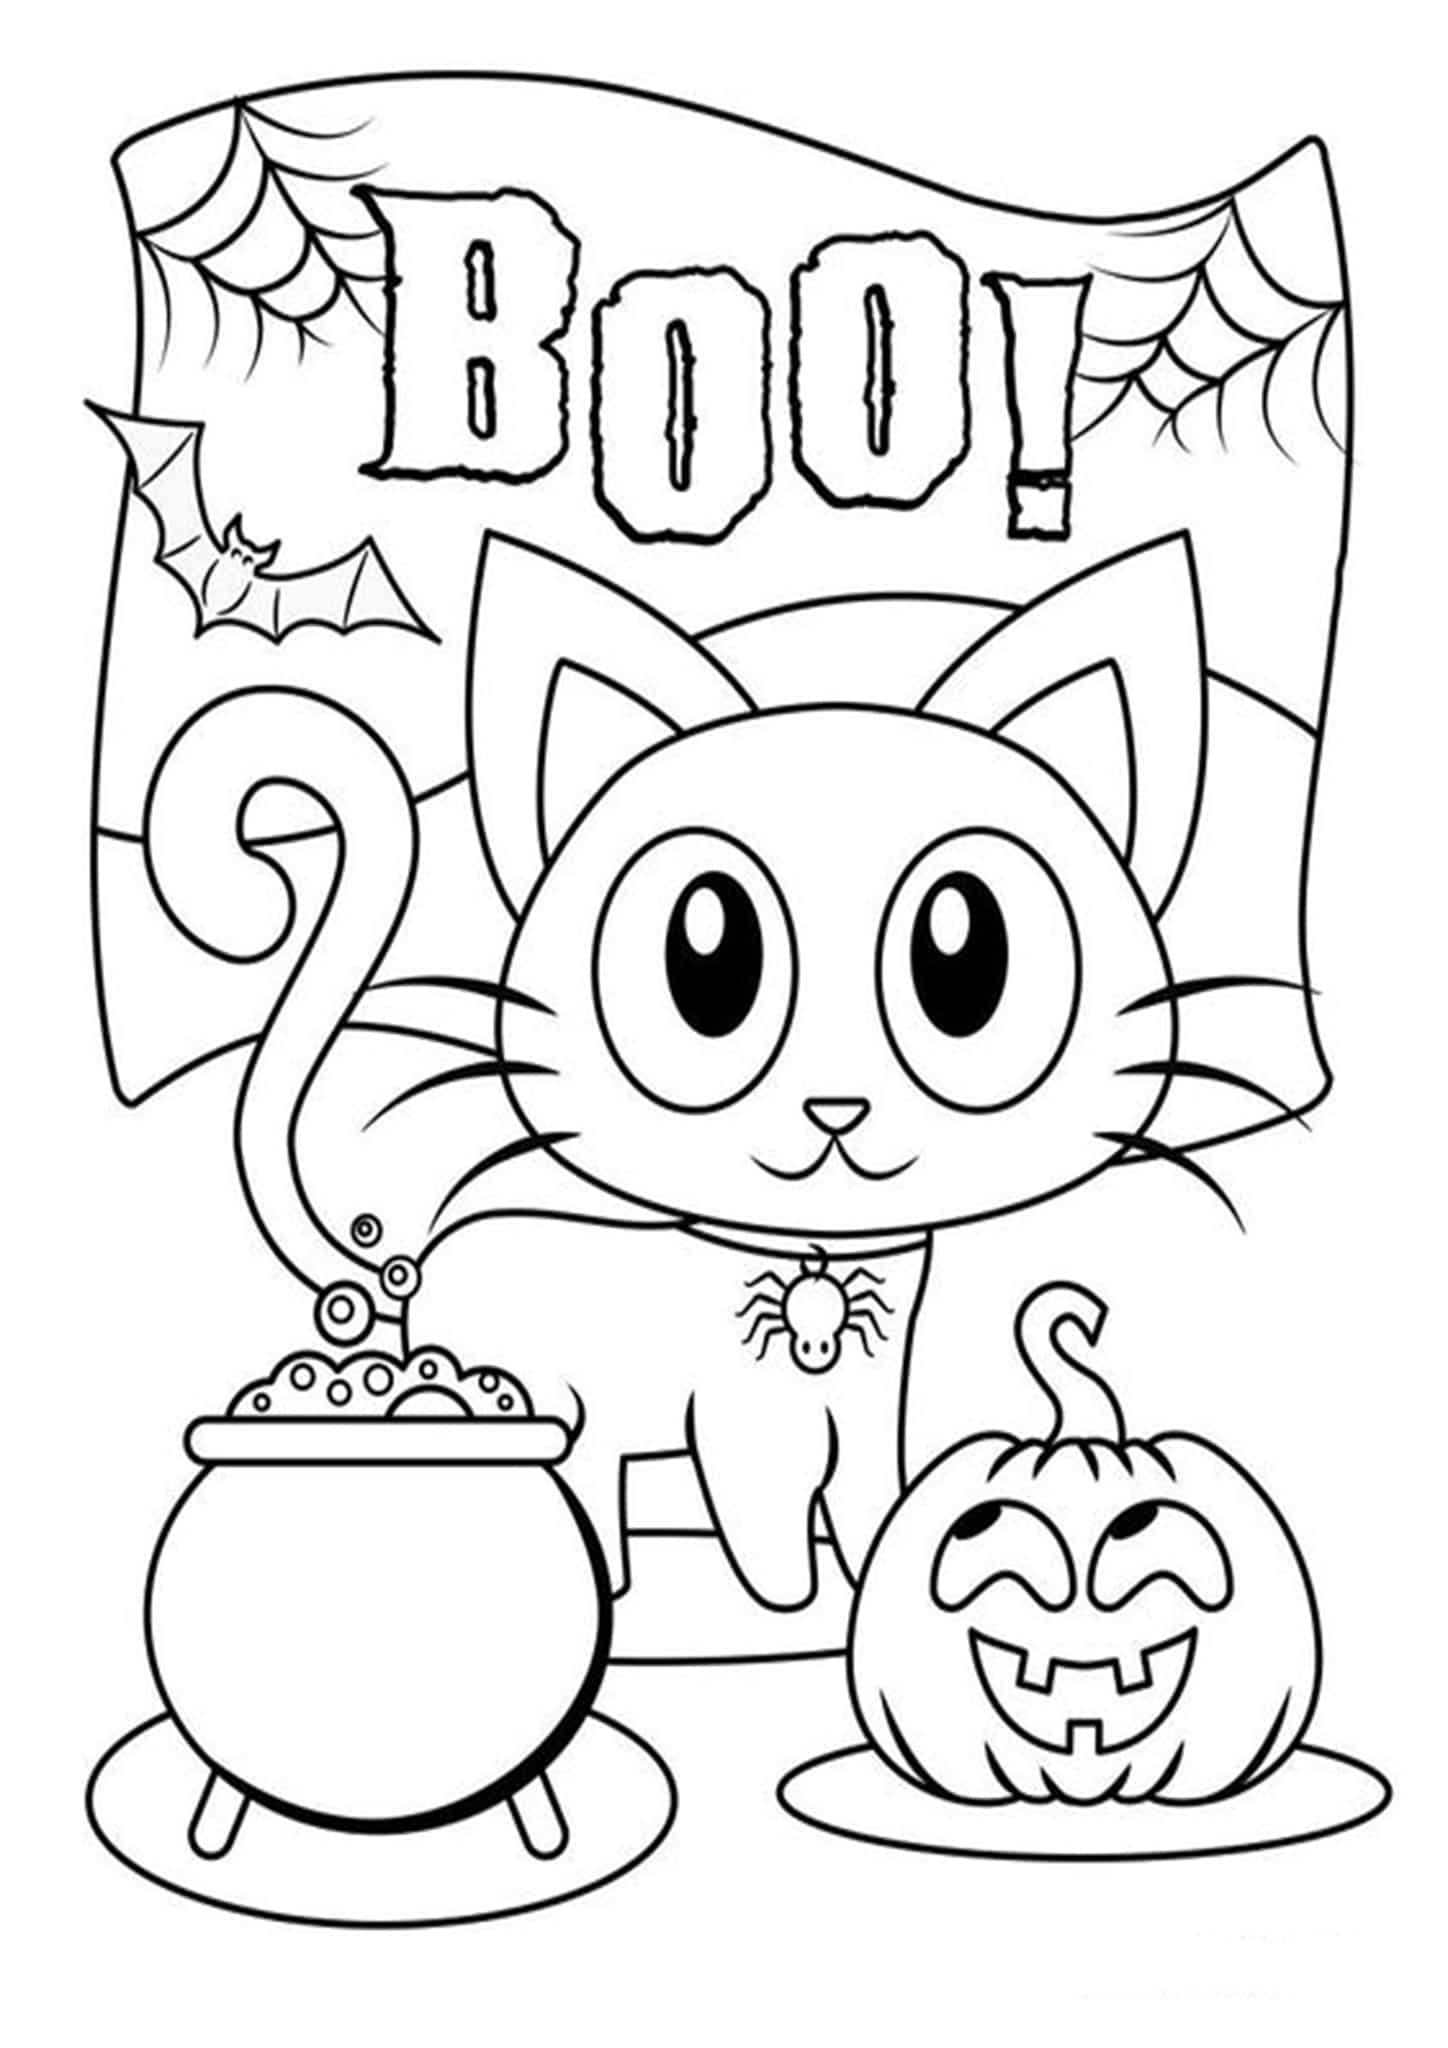 coloring worksheets easy simple coloring pages to download and print for free easy coloring worksheets